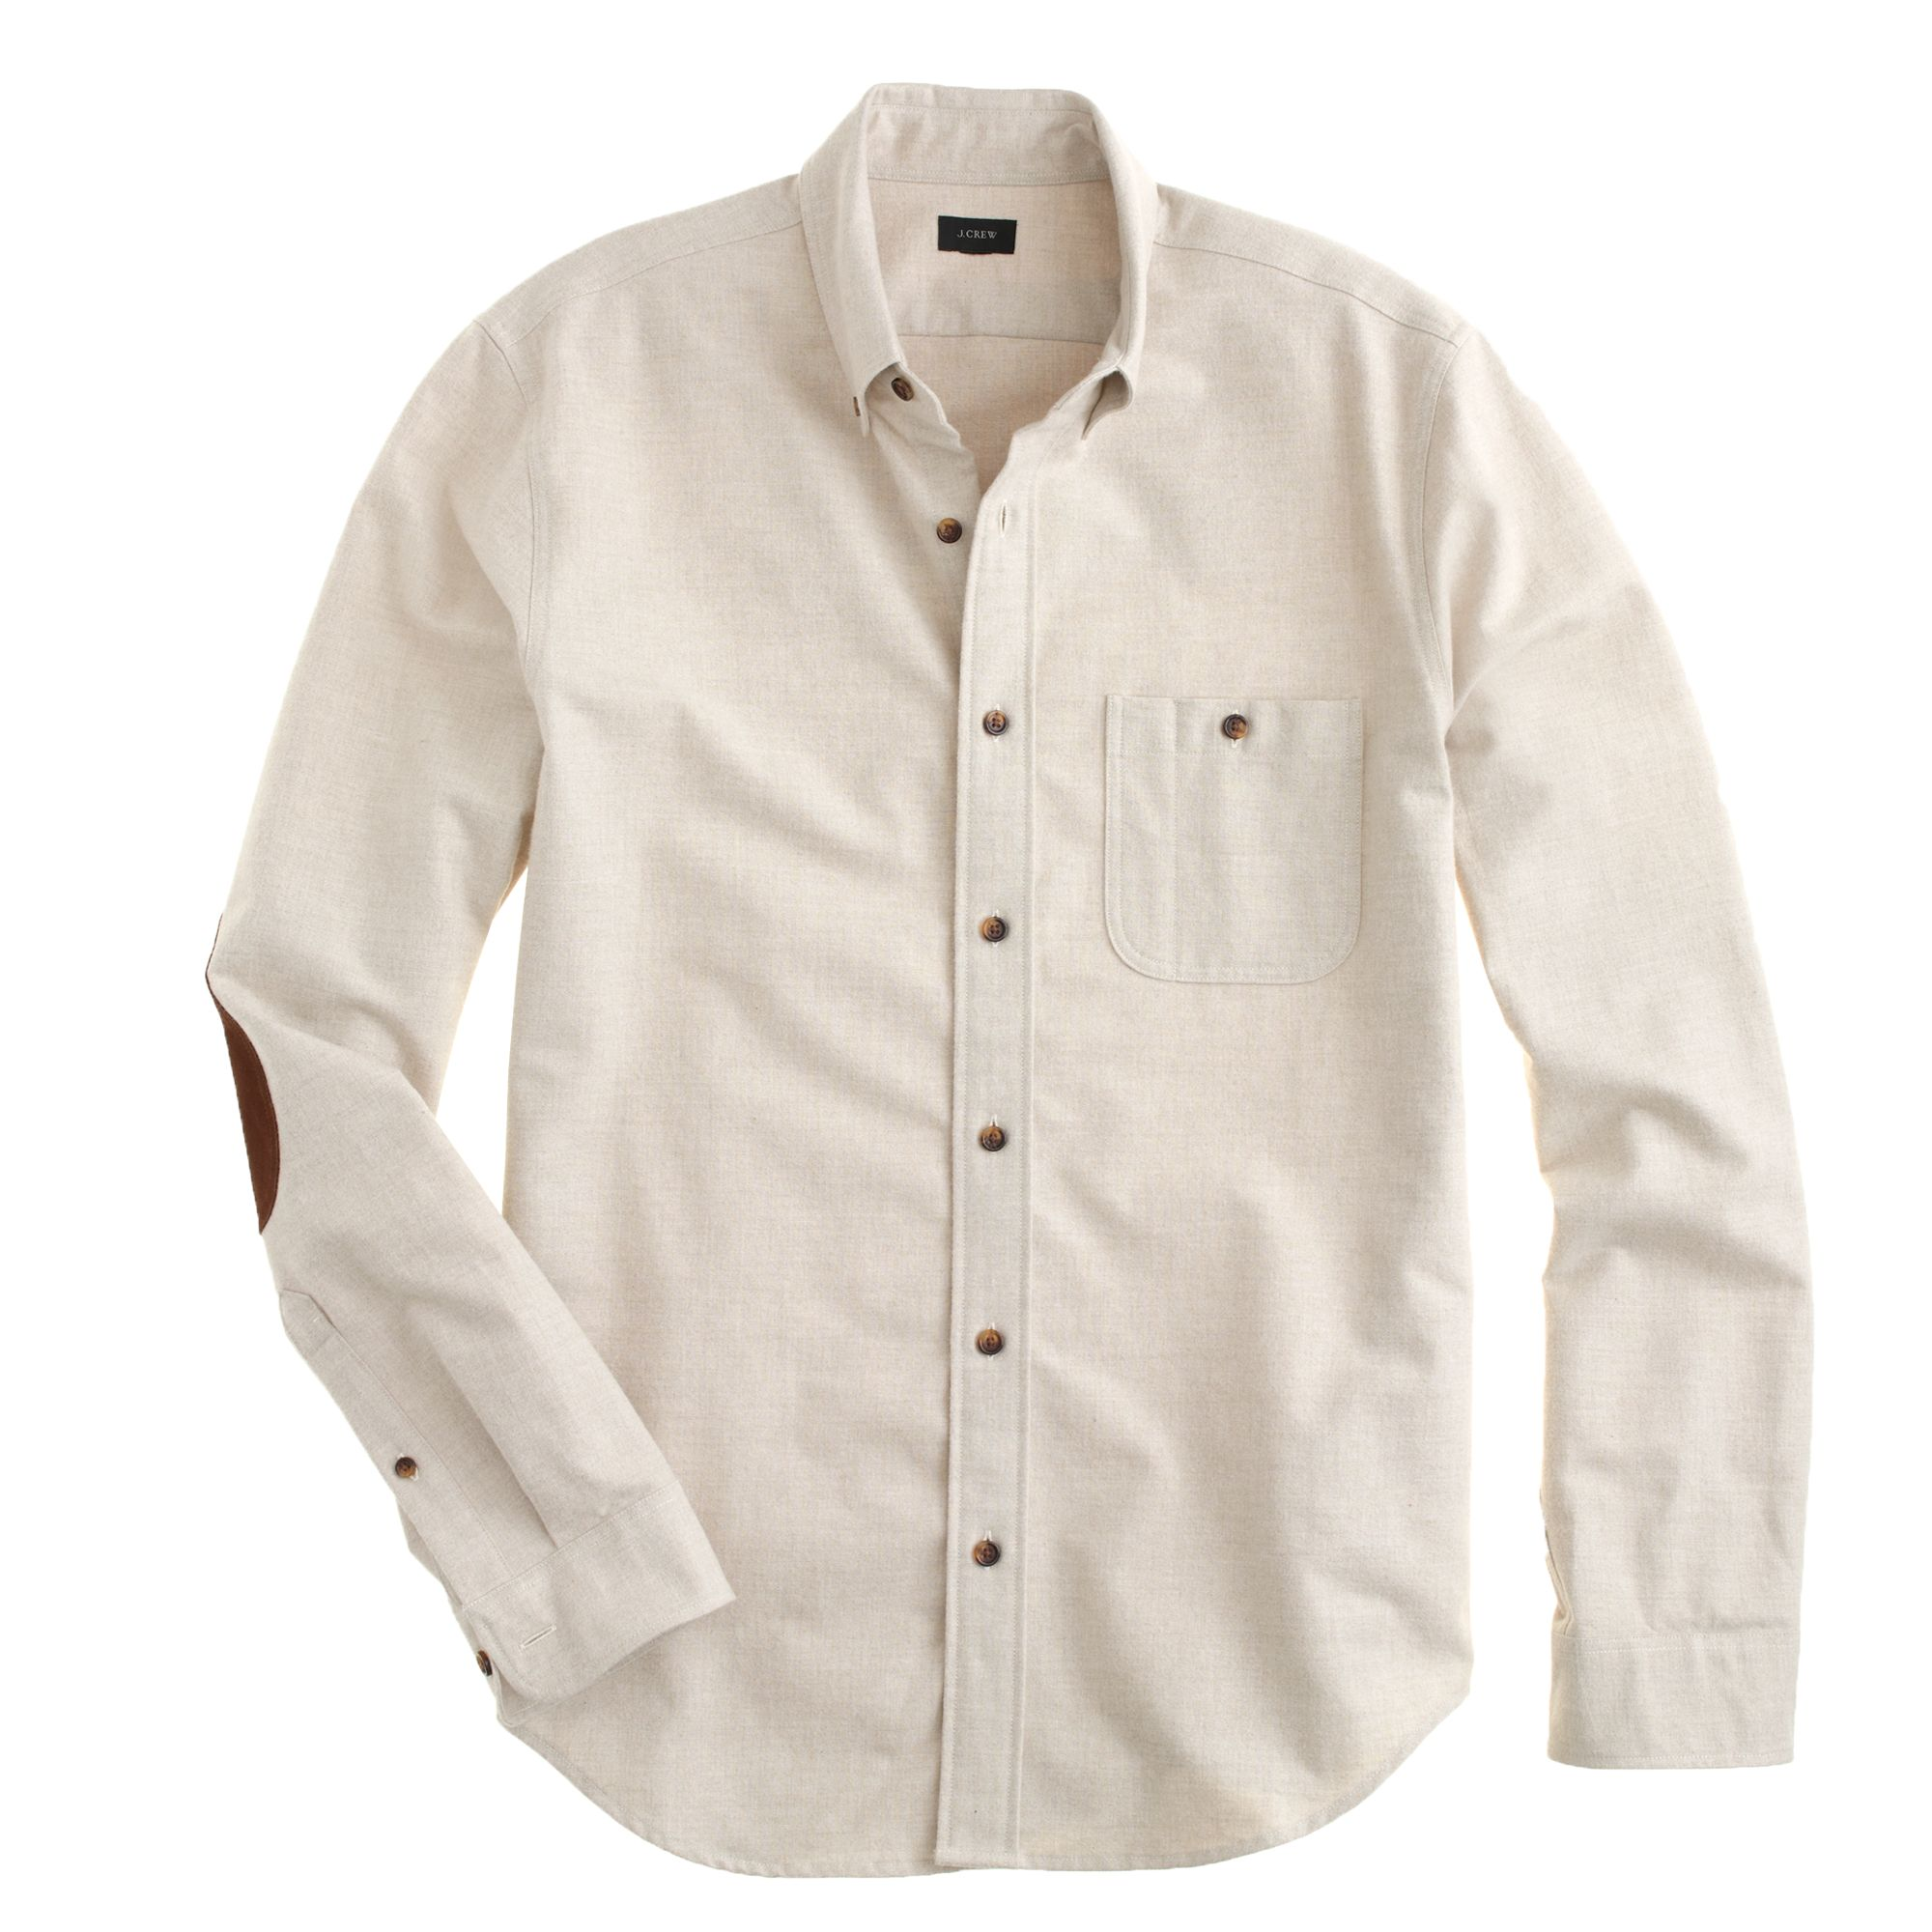 J crew heathered chamois elbowpatch shirt in beige for men